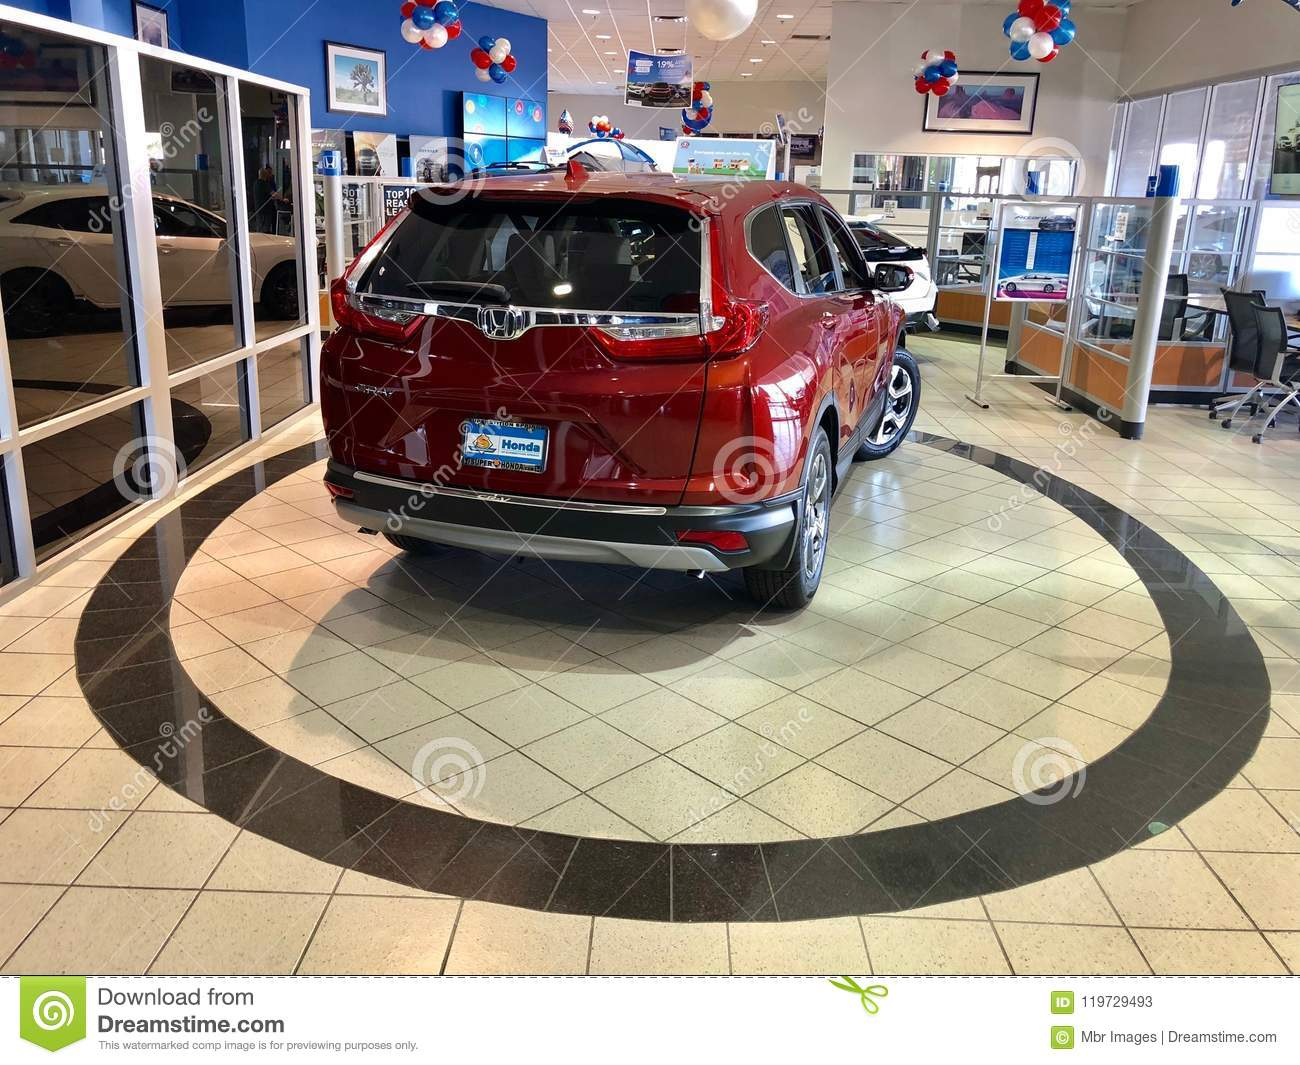 Honda Dealership Az >> Honda Car Dealership Editorial Stock Photo Image Of Booth